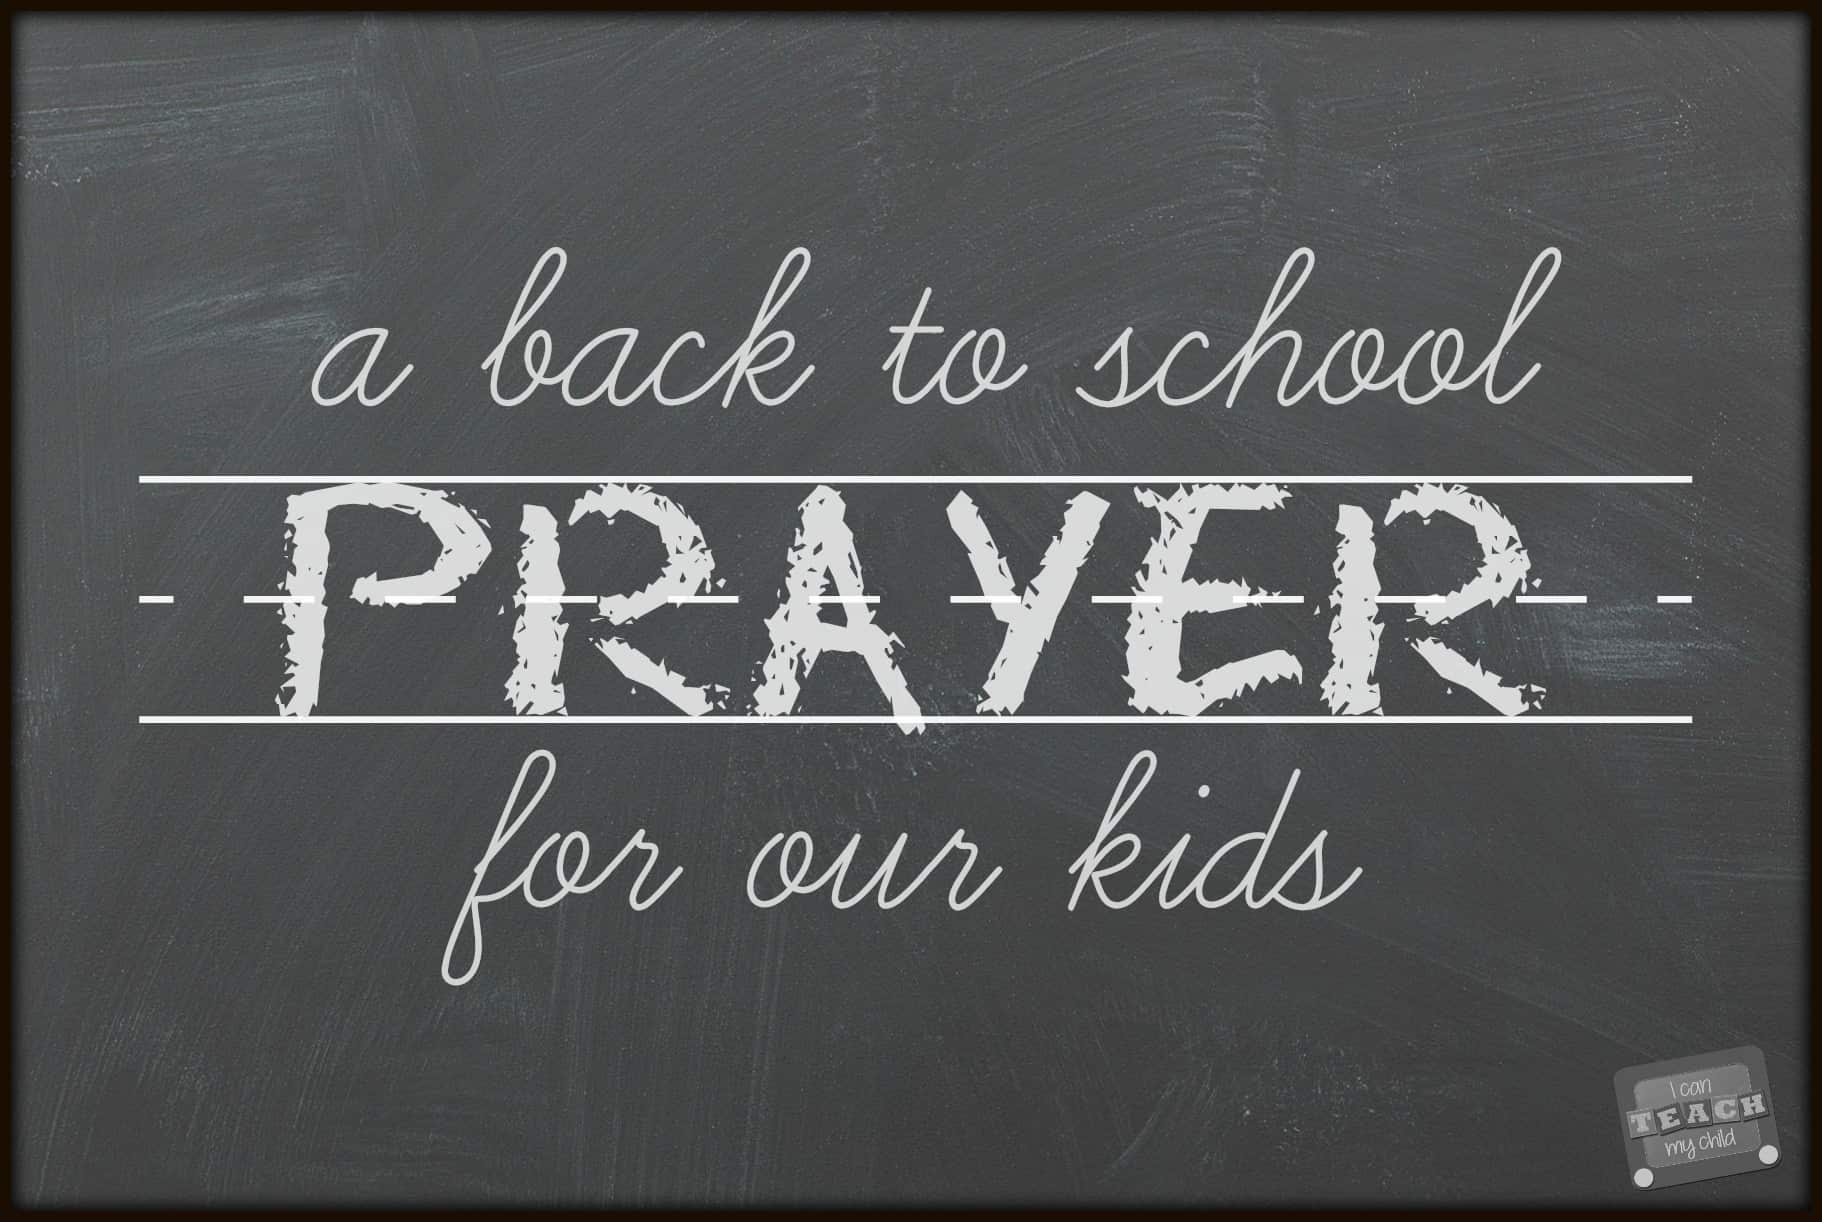 a back to school prayer for our kids i can teach my child